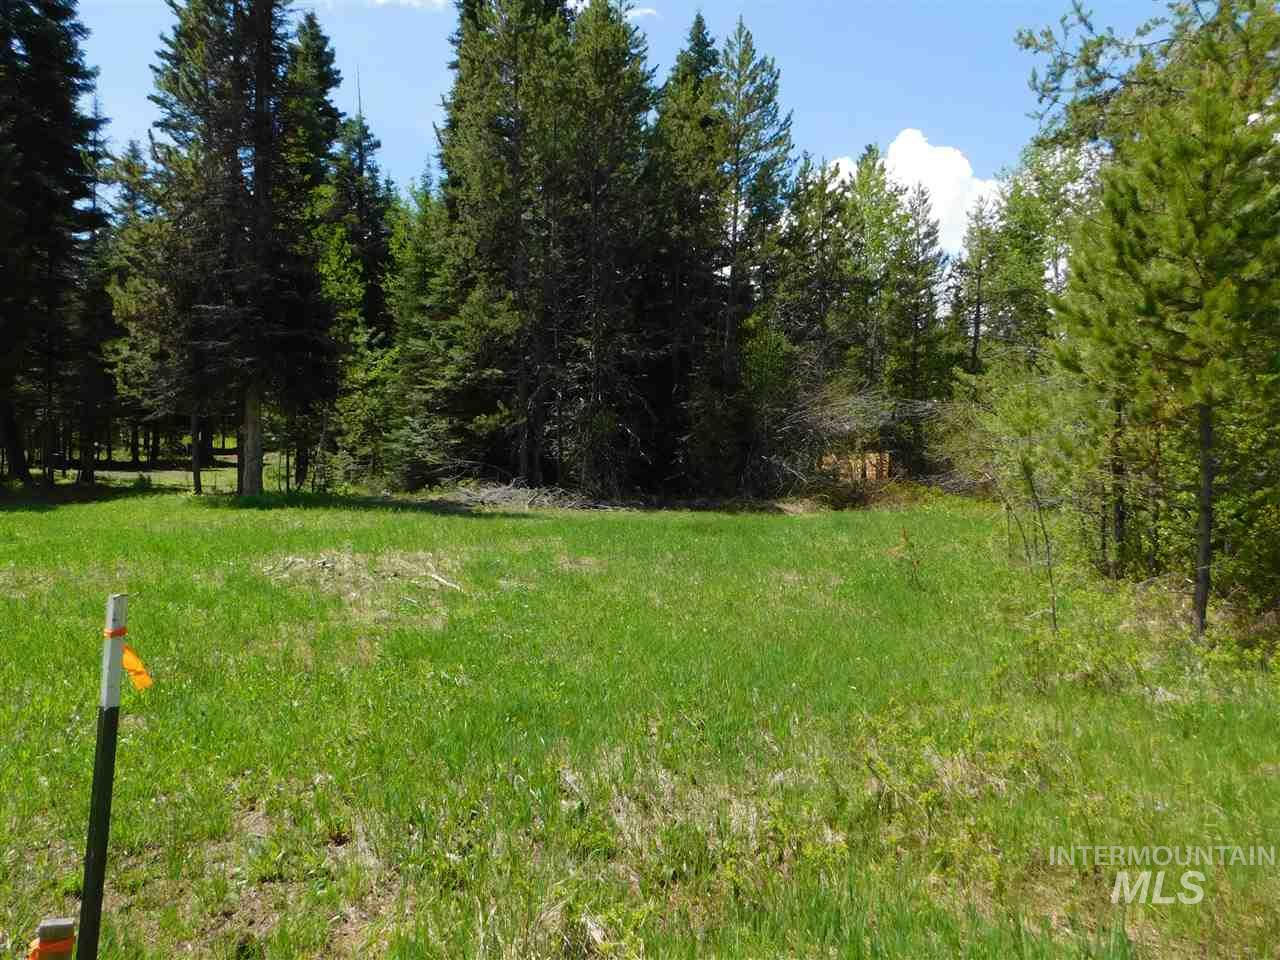 243 Ernesto Dr, McCall, Idaho 83638, Land For Sale, Price $92,000, 98731447